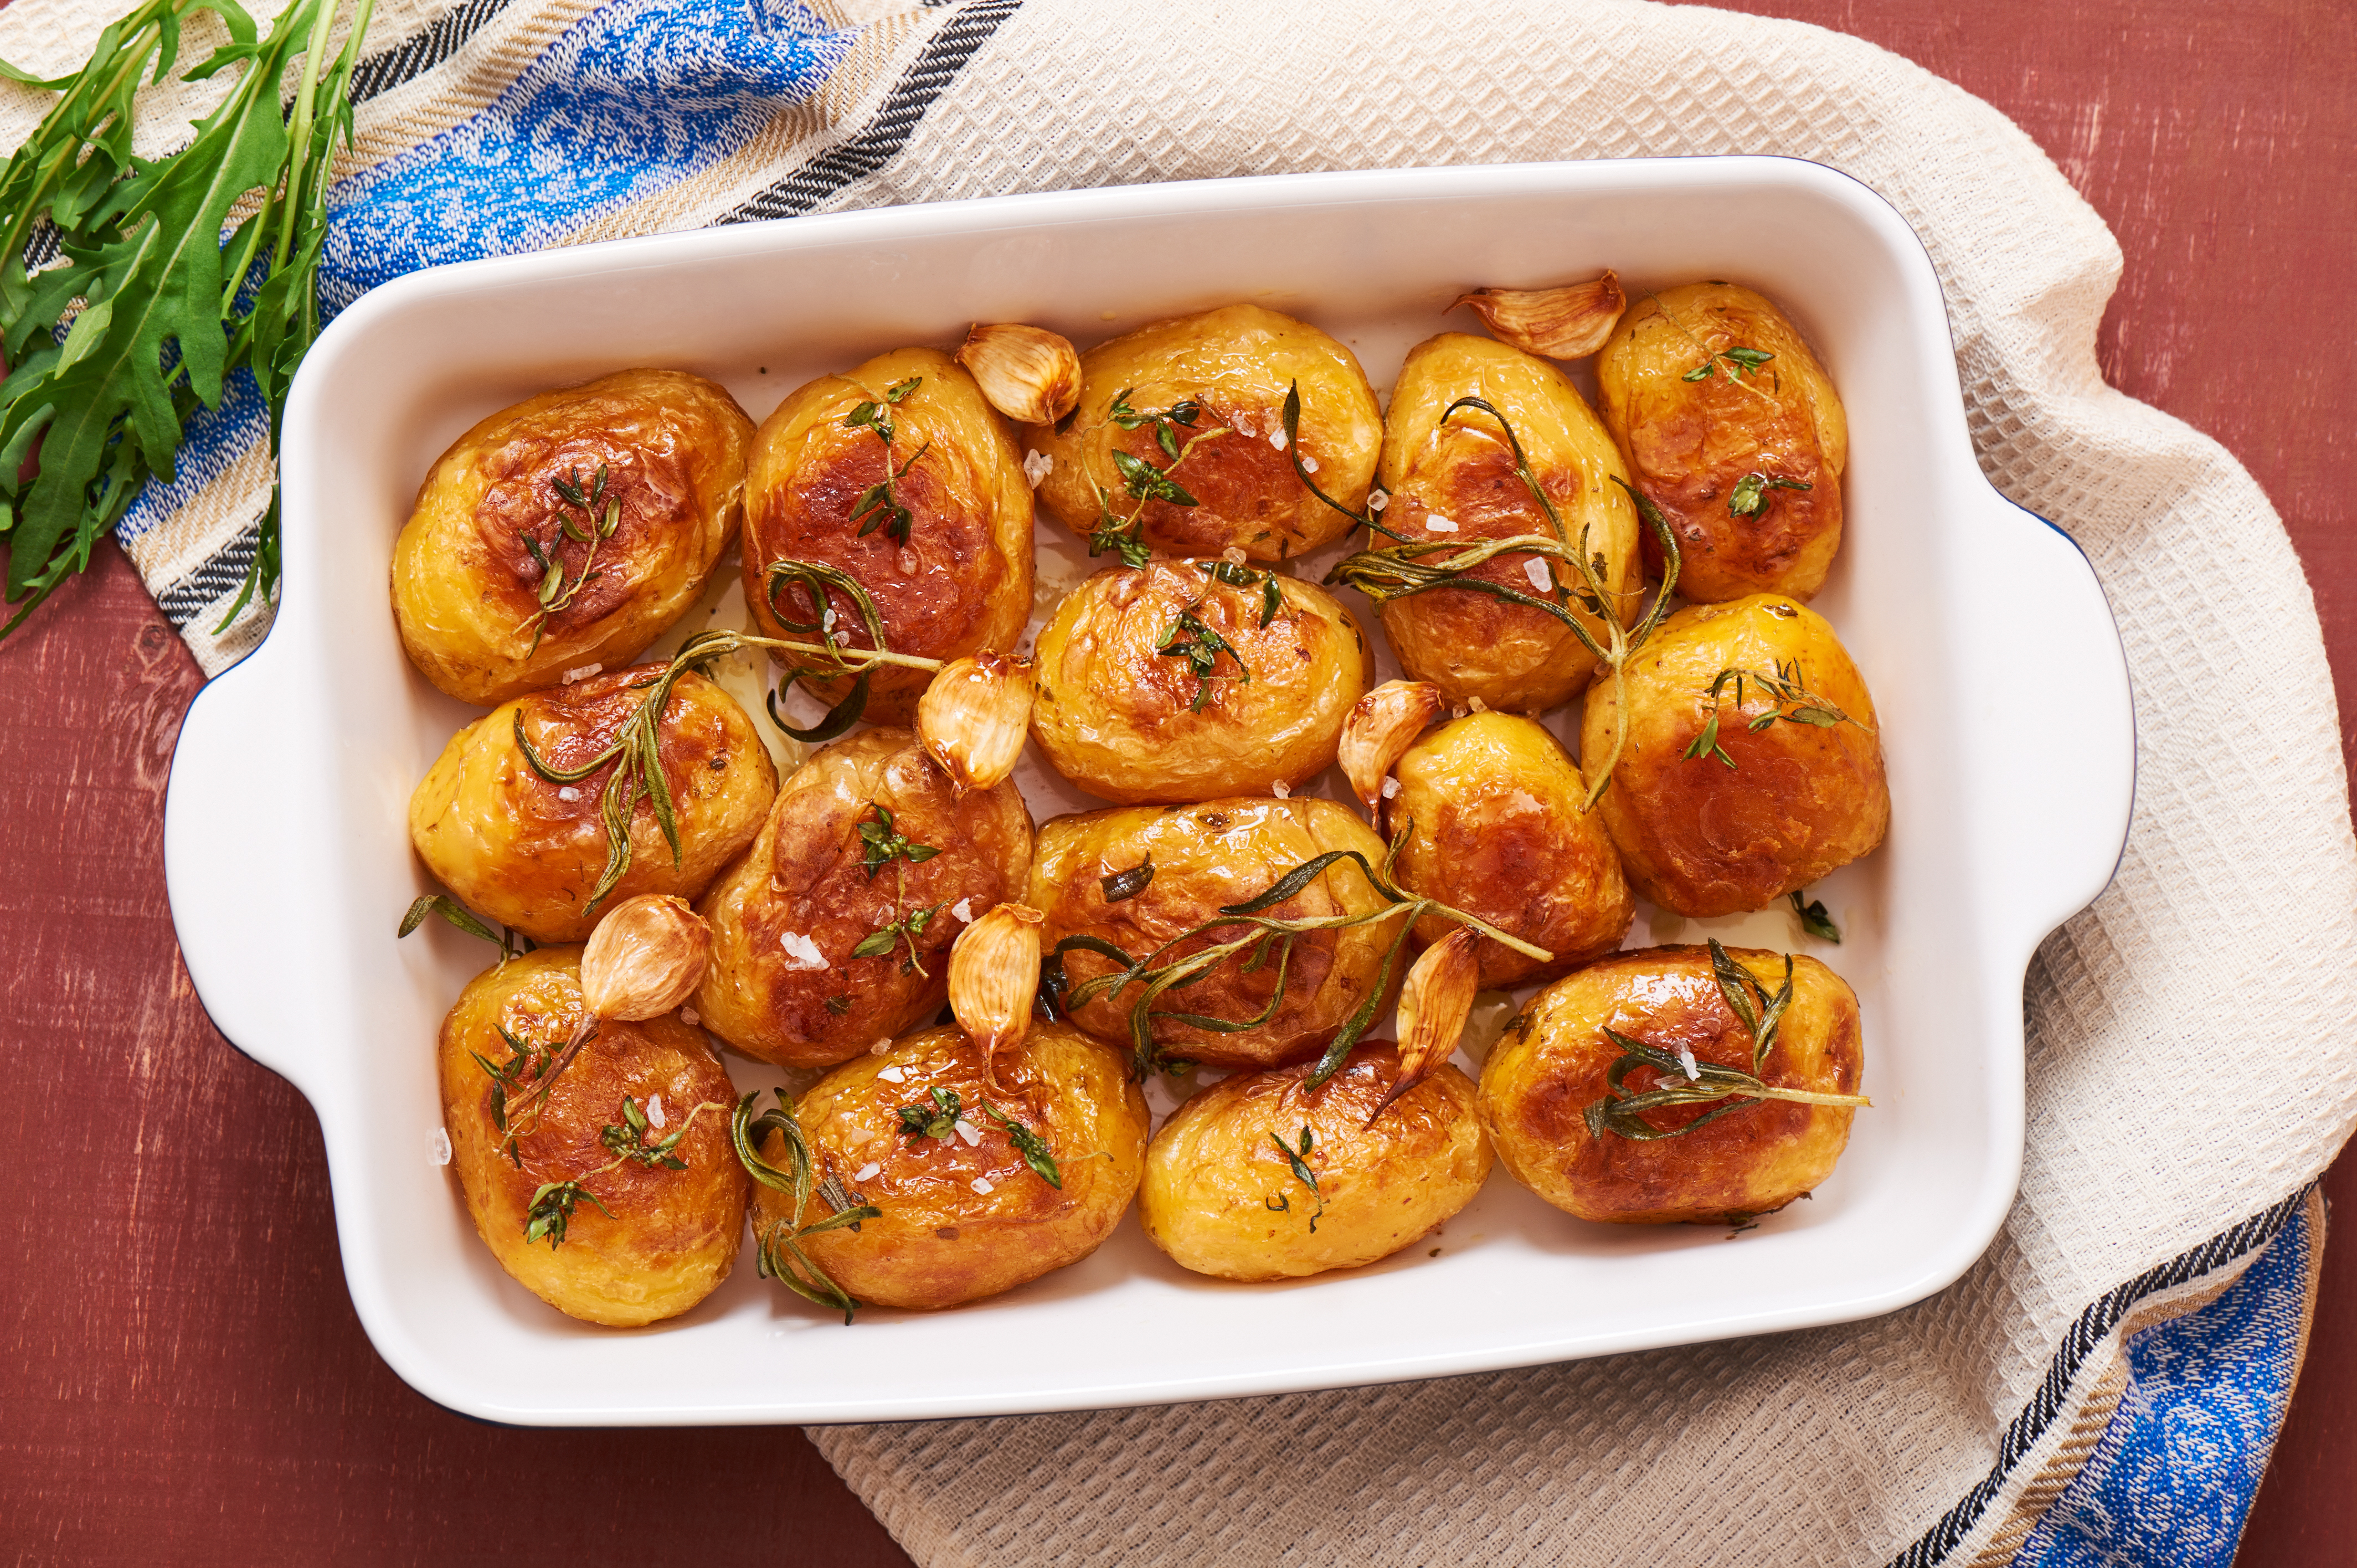 Piping hot tray of delicious roasted potatoes.